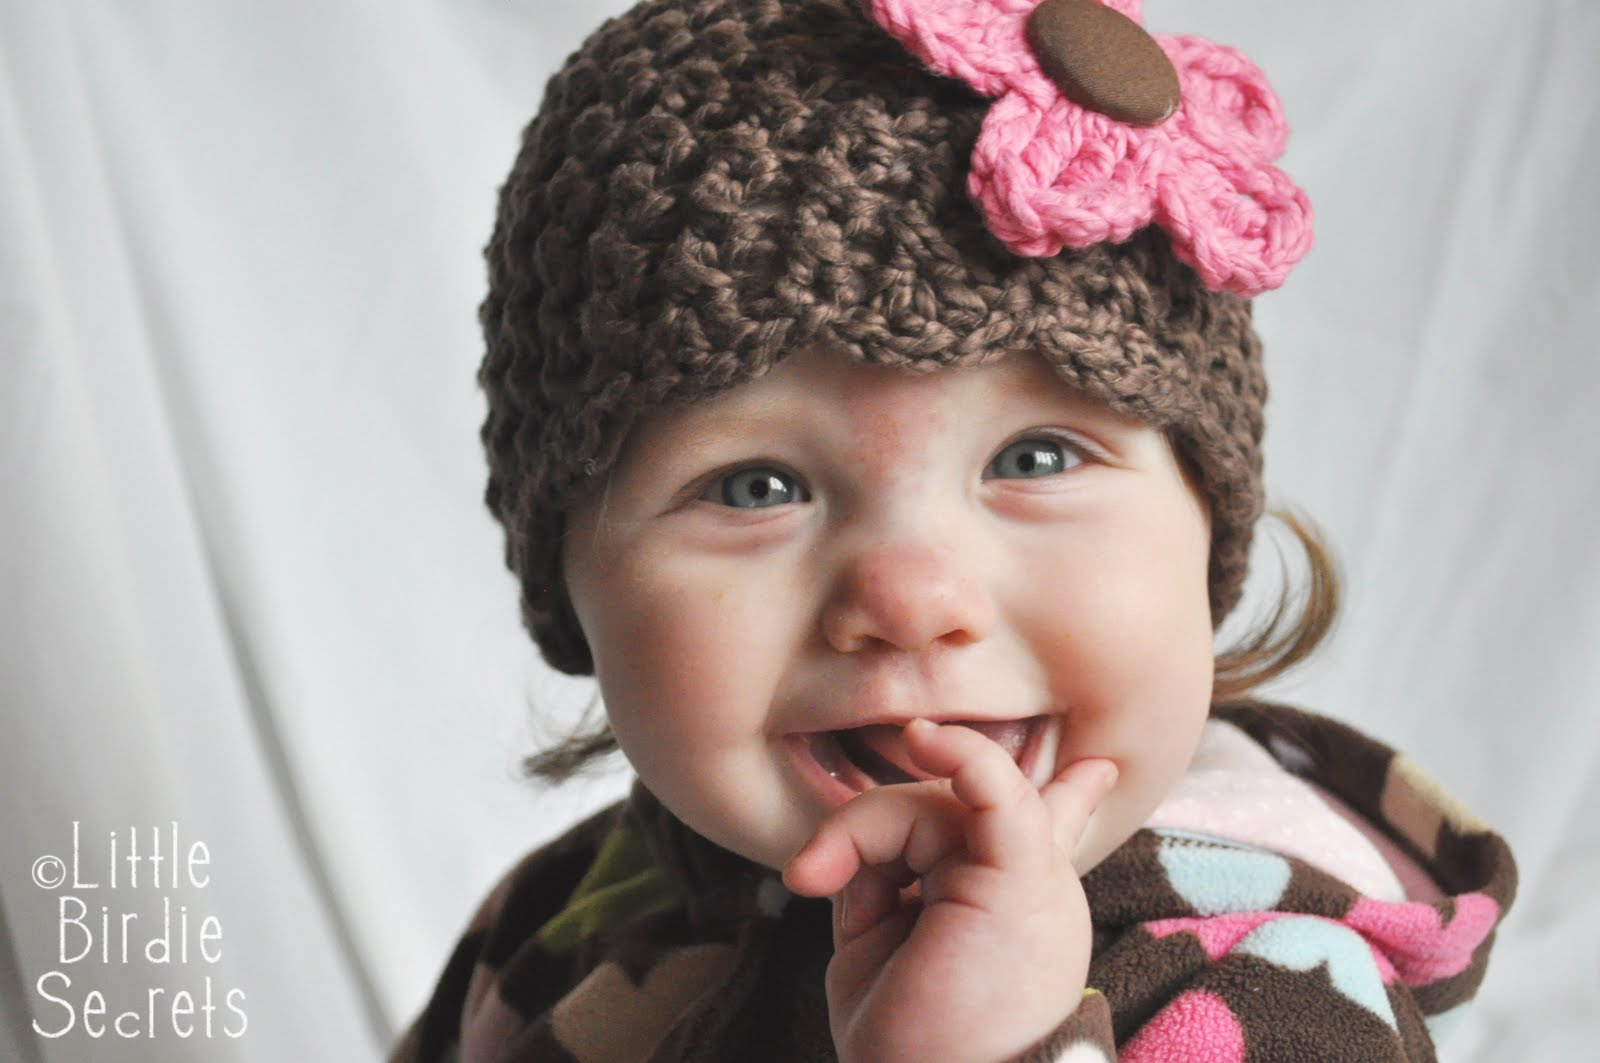 Free Patterns Crochet Beanies : CROCHETED BEANIE HAT PATTERN - Crochet Club